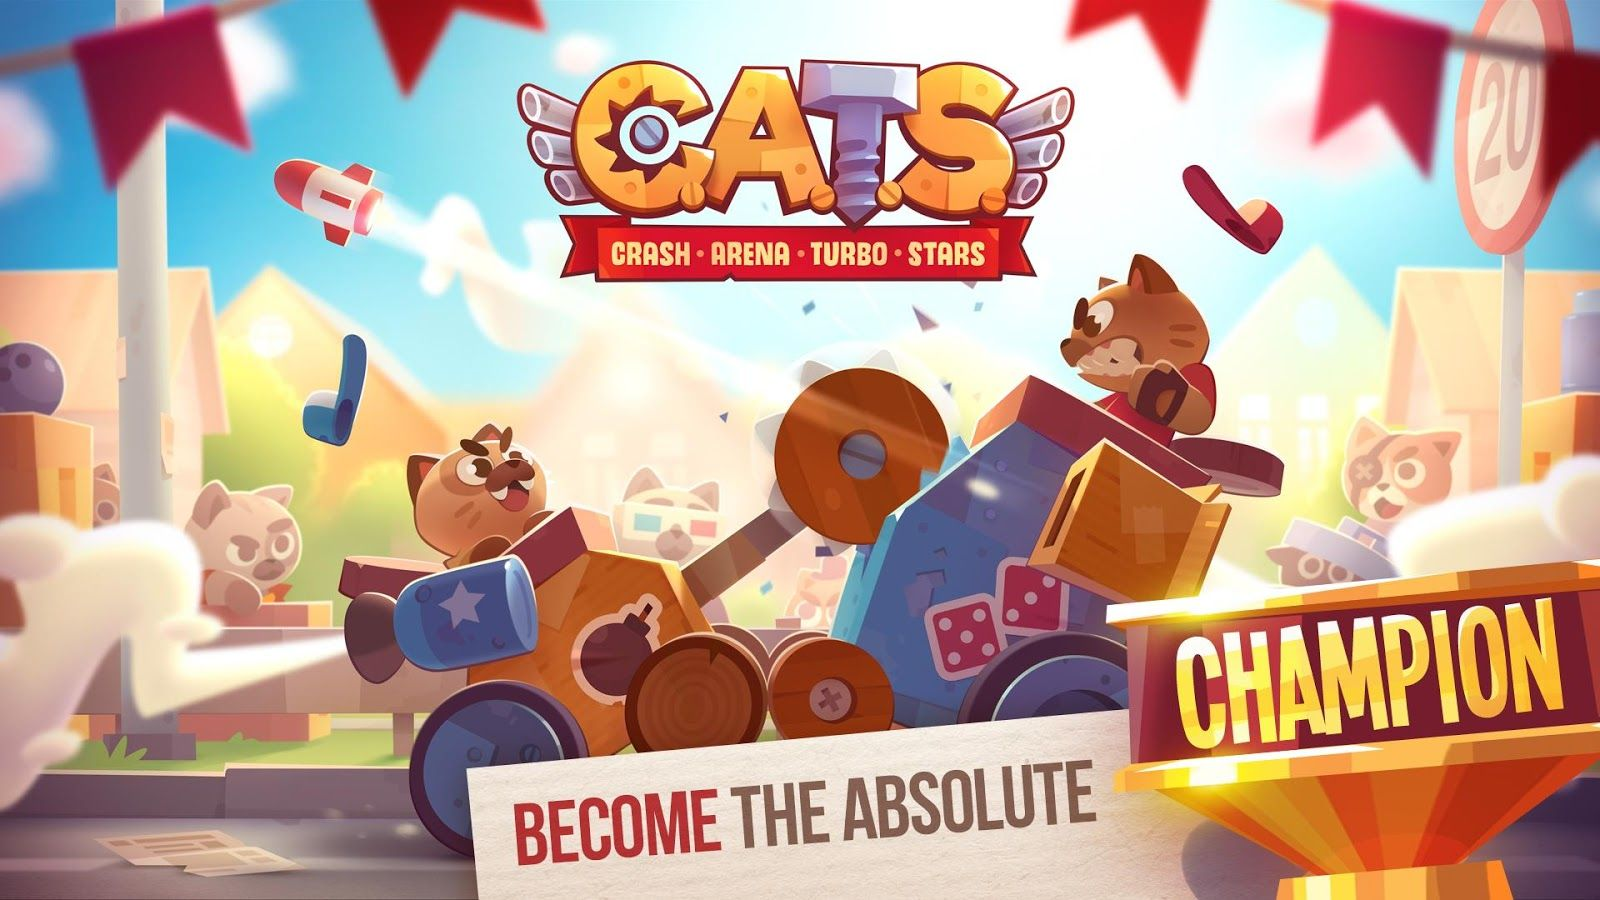 Pin by Dora Cheats on game art 2 Mobile game, Cheat